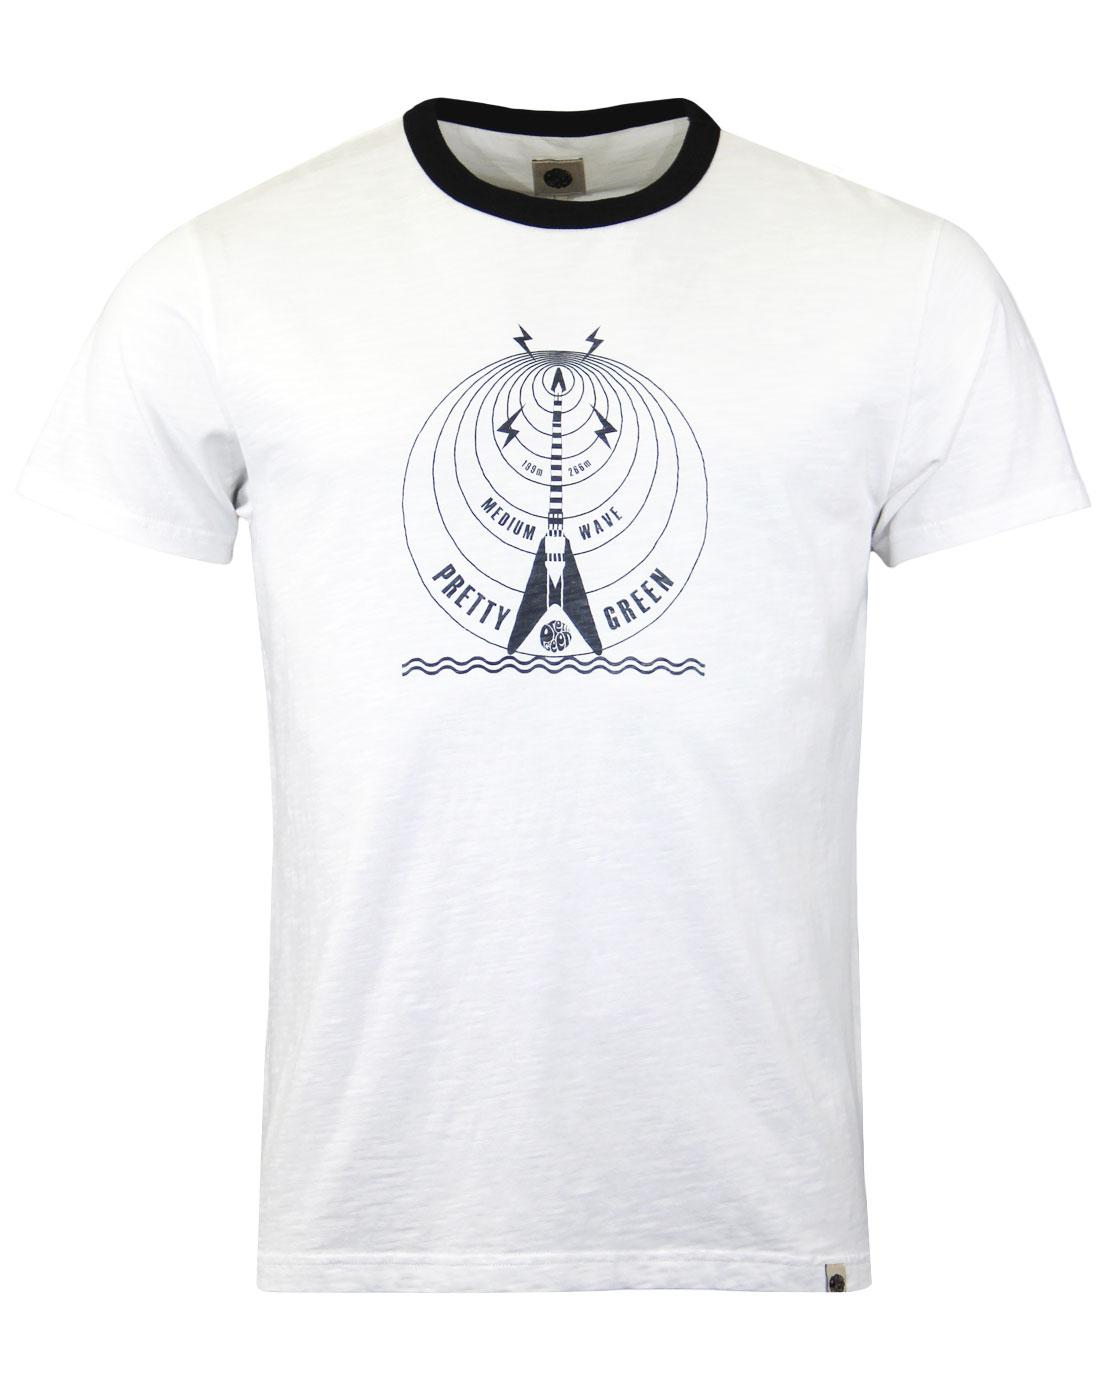 Mediumwave PRETTY GREEN Retro Pirate Radio Tee (W)